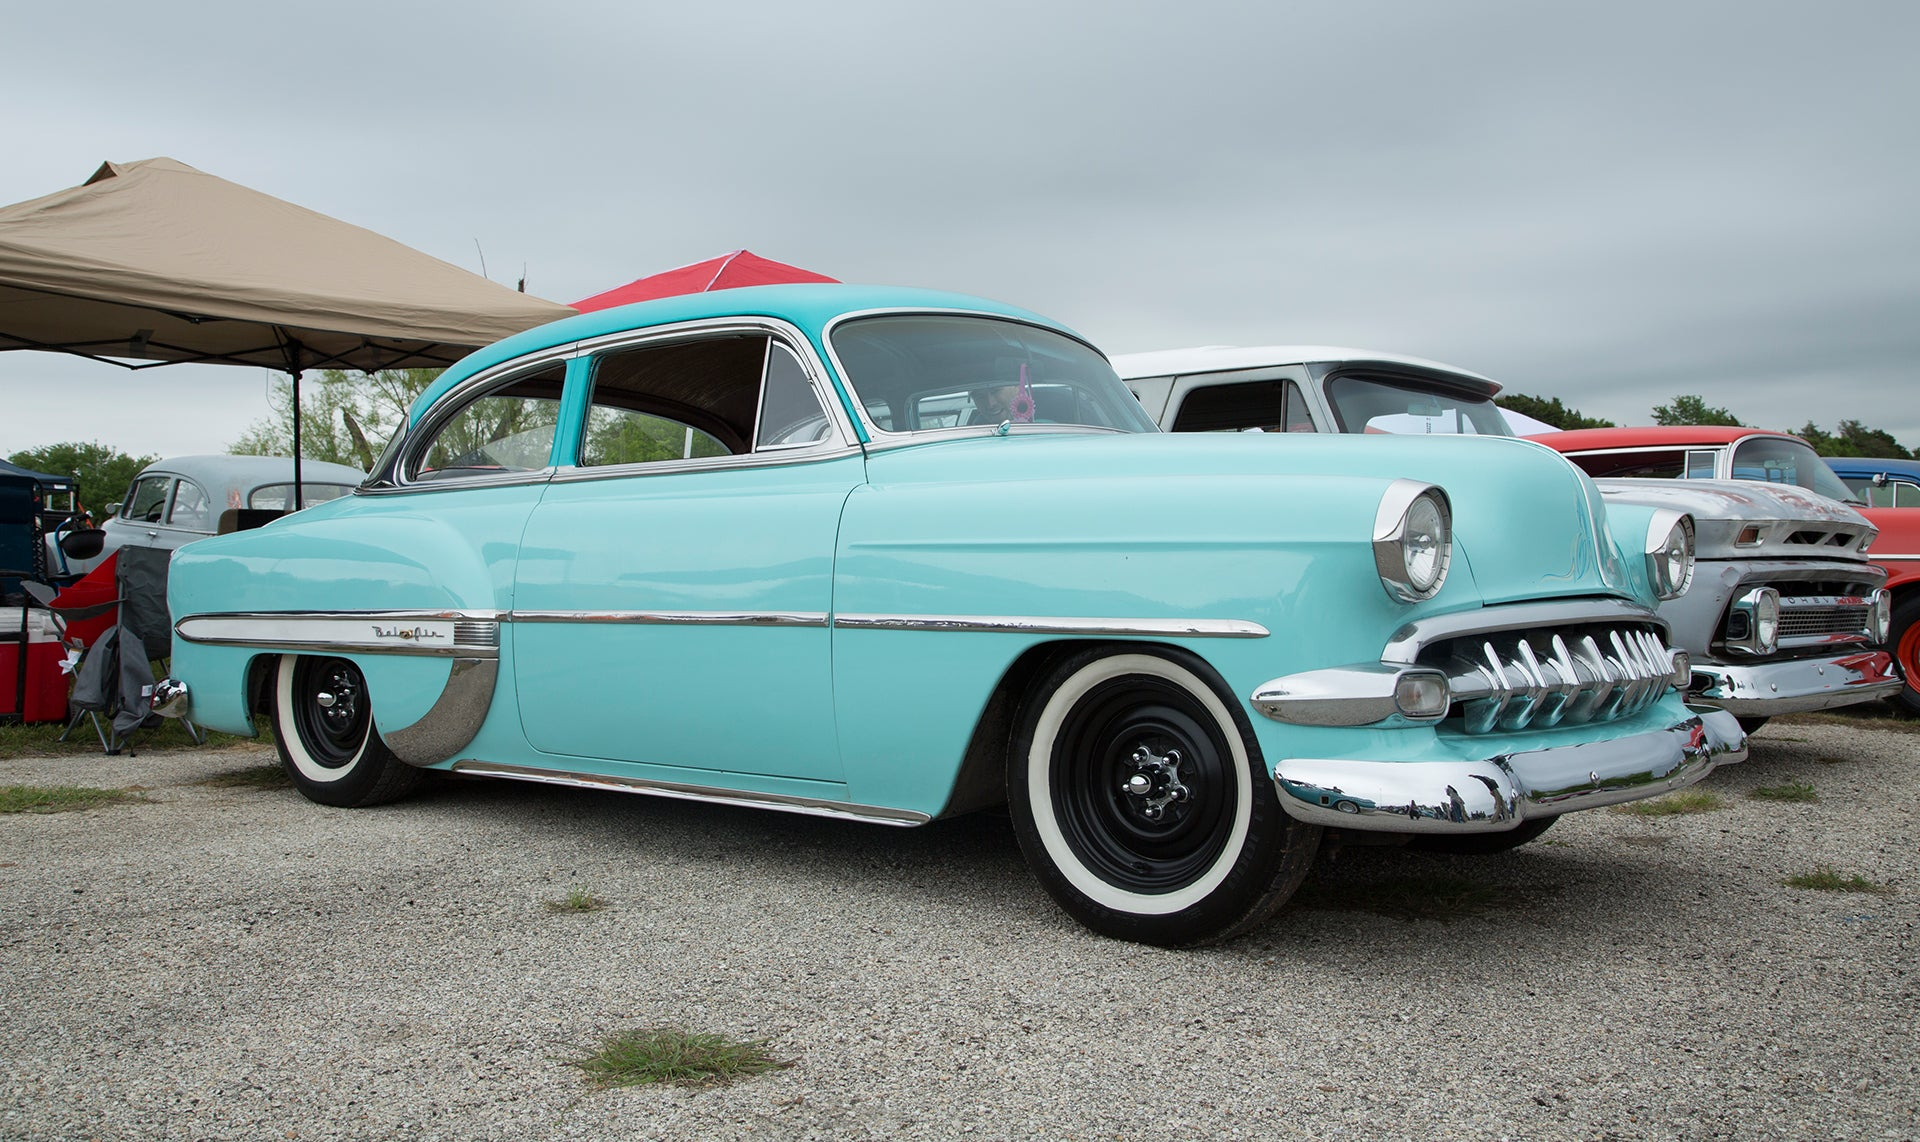 Beautiful teal colored chevrolet belair at the car show